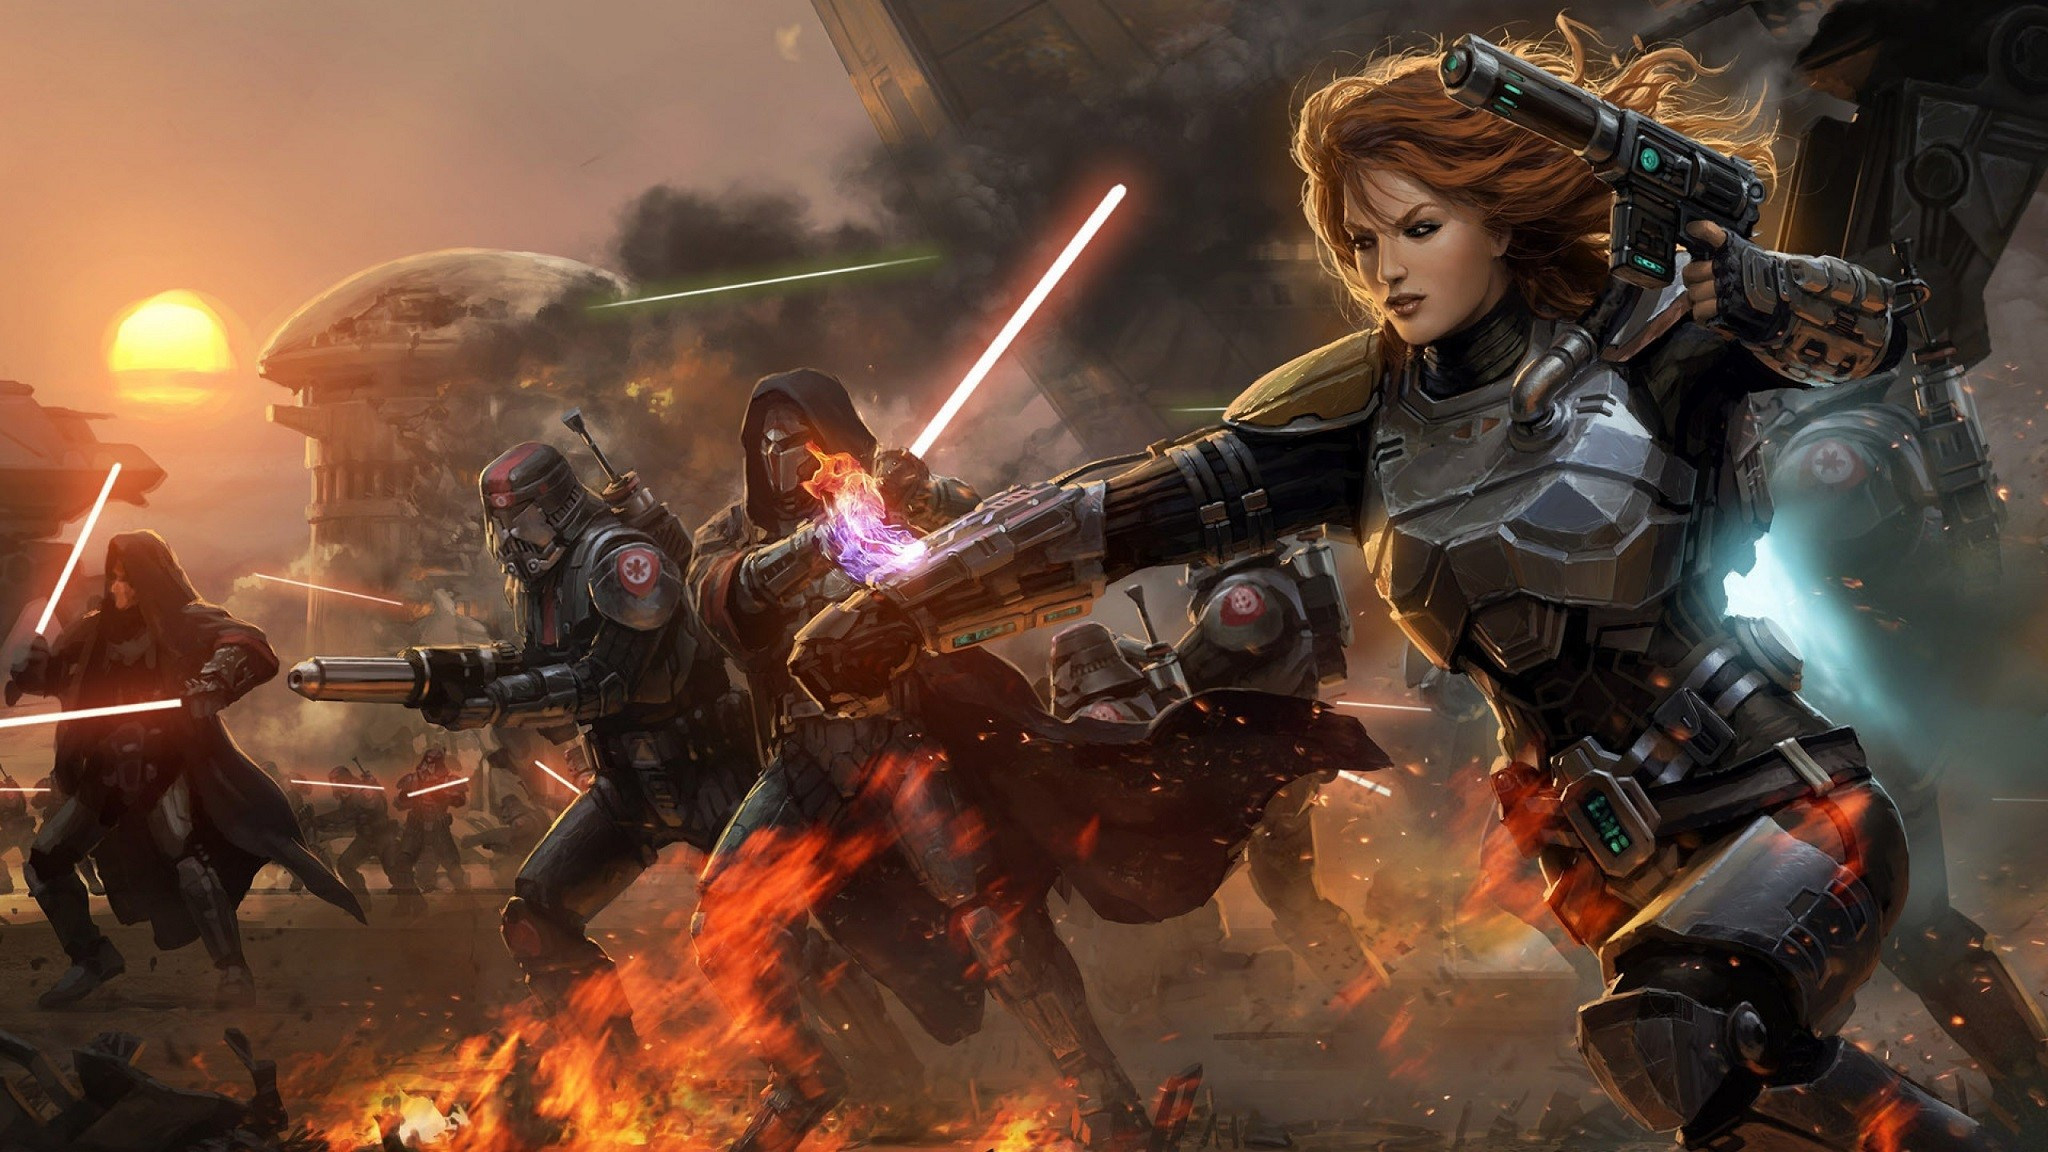 2048x1152 Star Wars-The Old Republic: Swtor